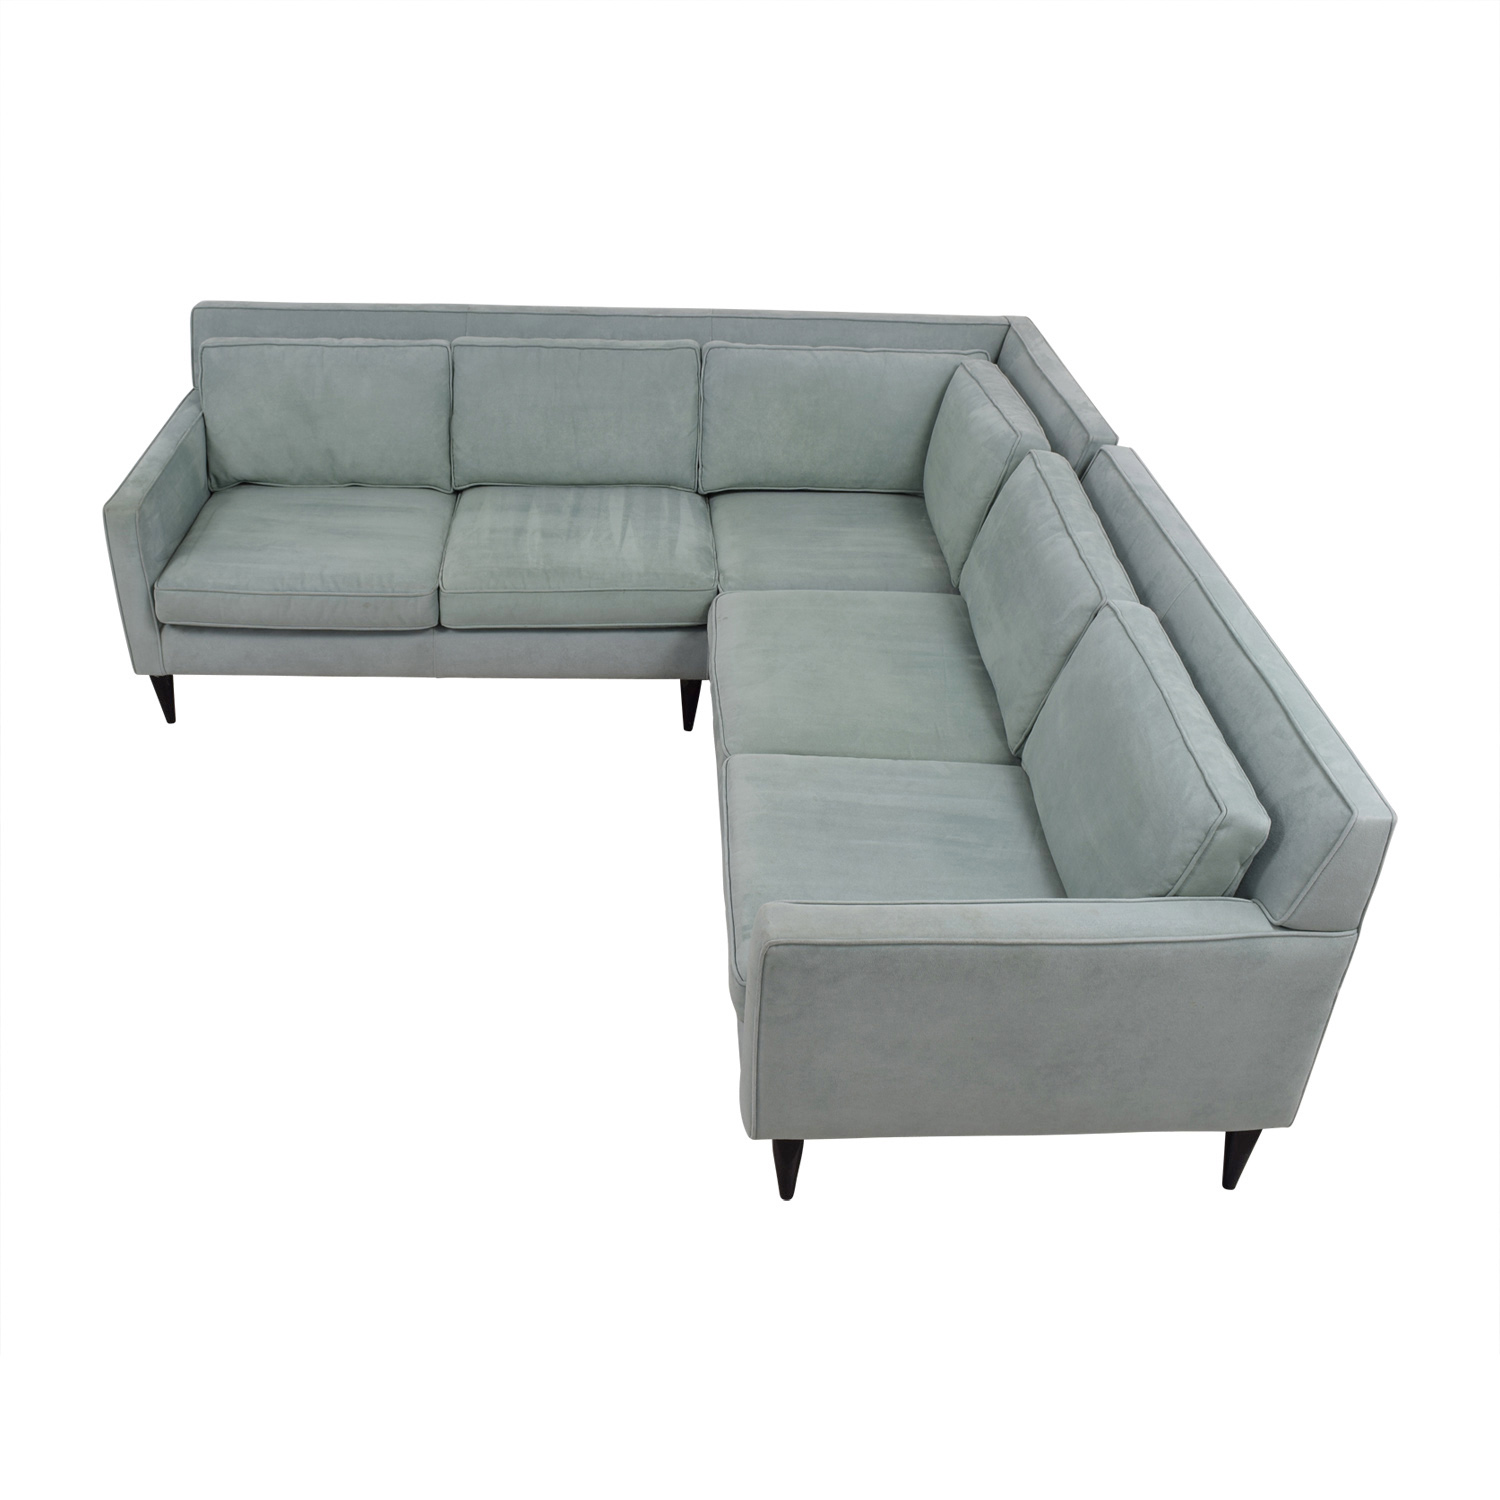 Crate & Barrel Crate & Barrel Rochelle Teal Sectional used